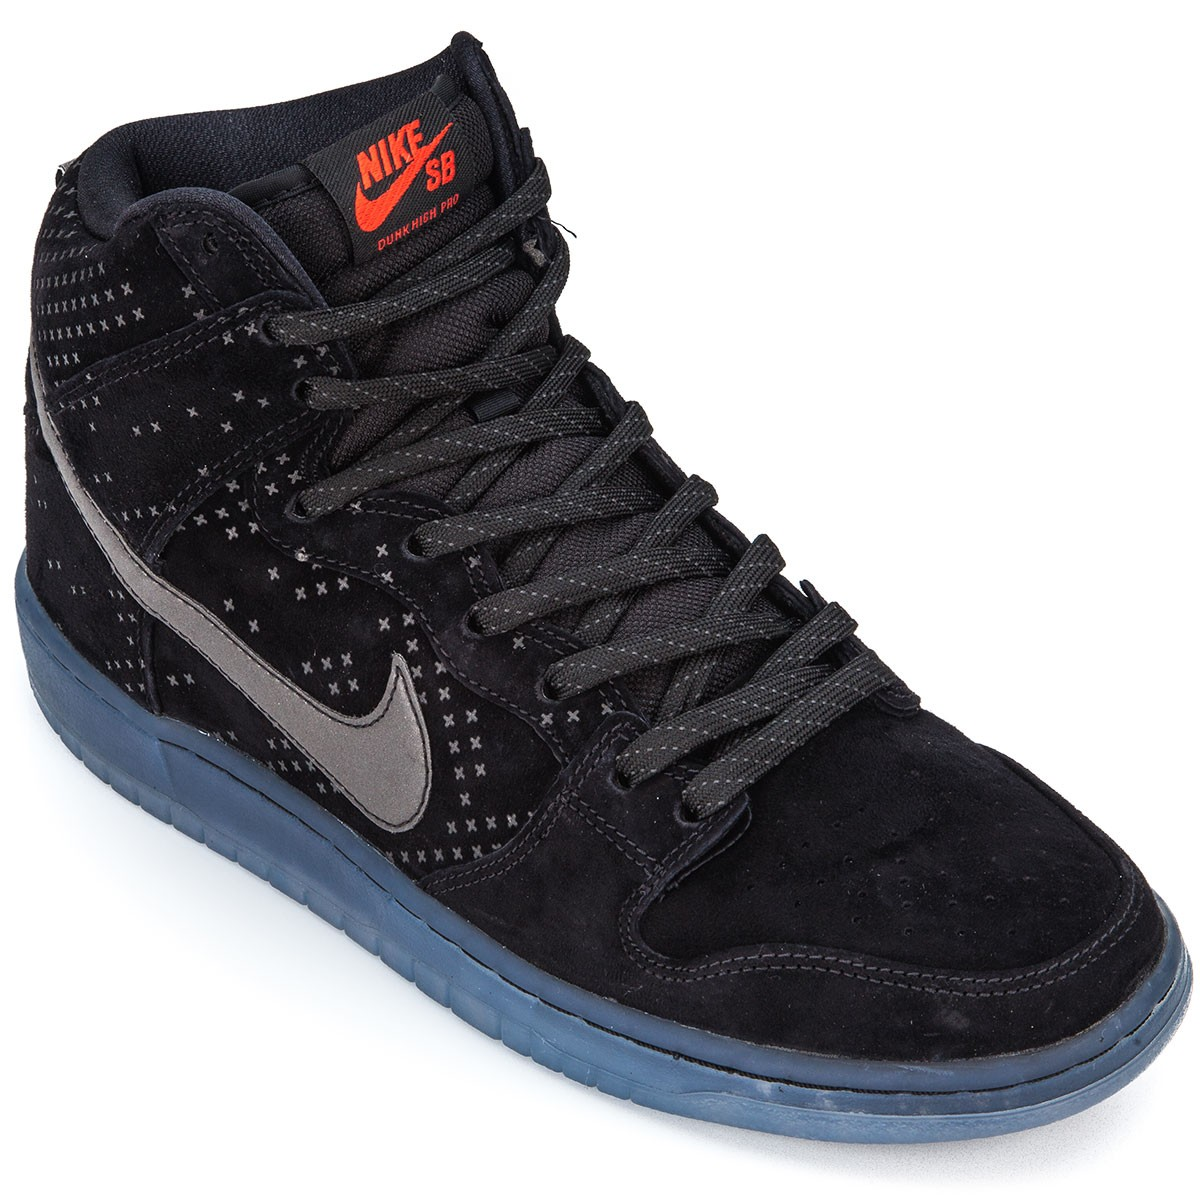 32a03b95a386 Nike Dunk High Premium Flash SB Shoes - Black Clear Black - 10.0